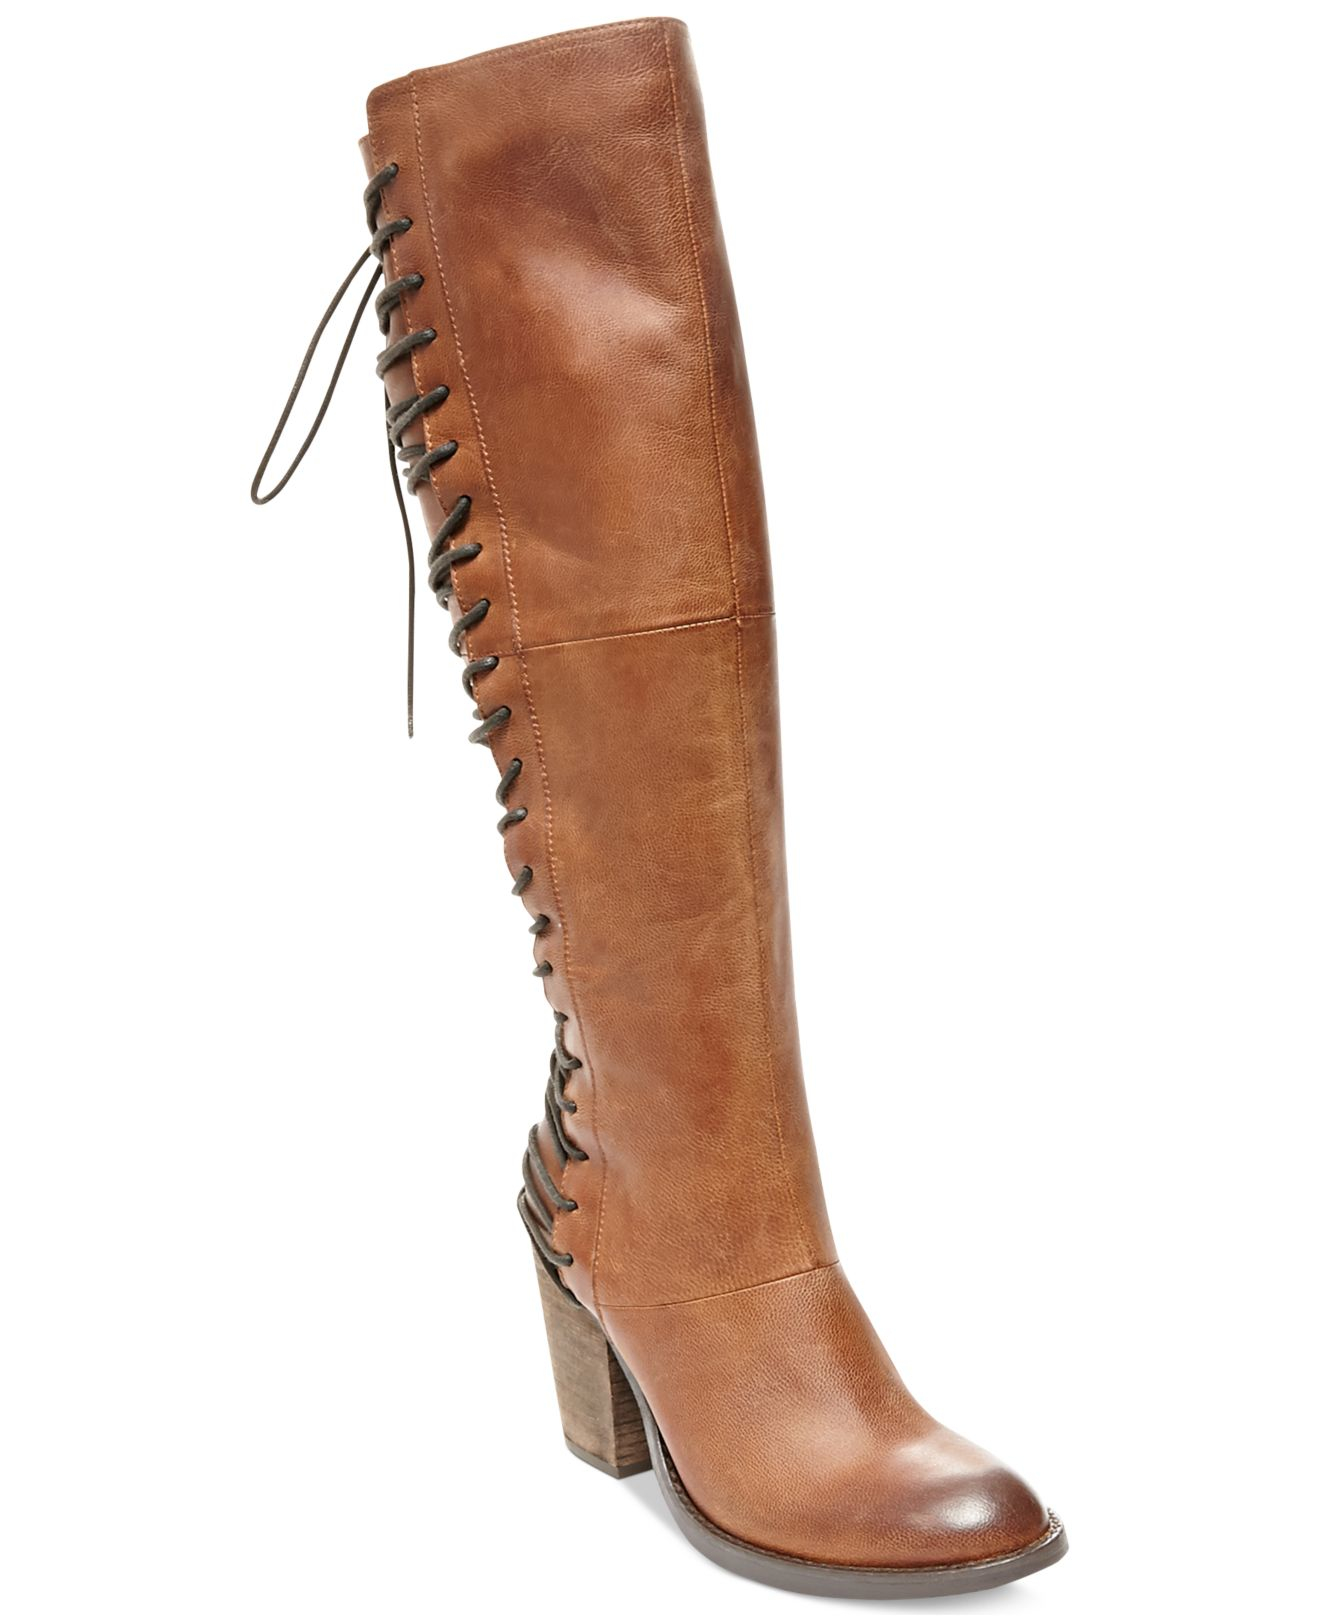 bfb96b718b2 Lyst - Steve Madden Rickter Lace-up Boots in Brown